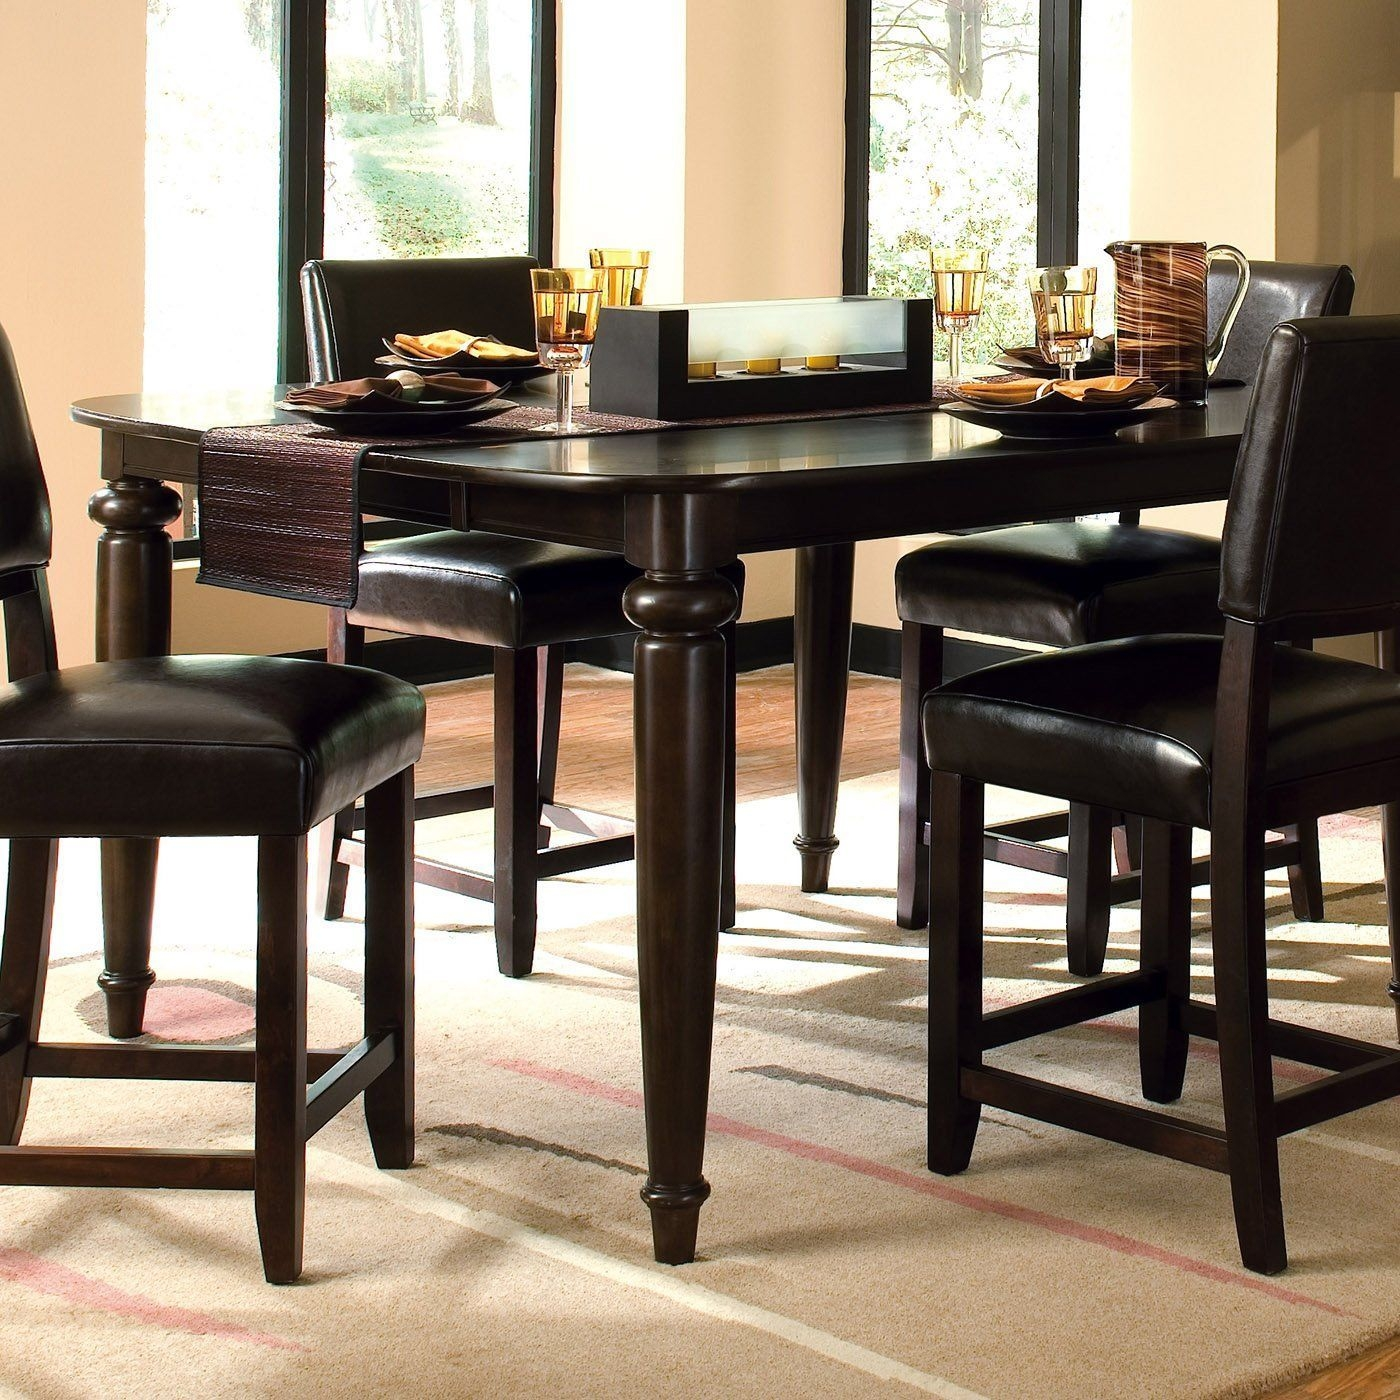 Kincaid Furniture 46058 Somerset Tall Dining Table Espresso  Round Kitchen Table Set Tall